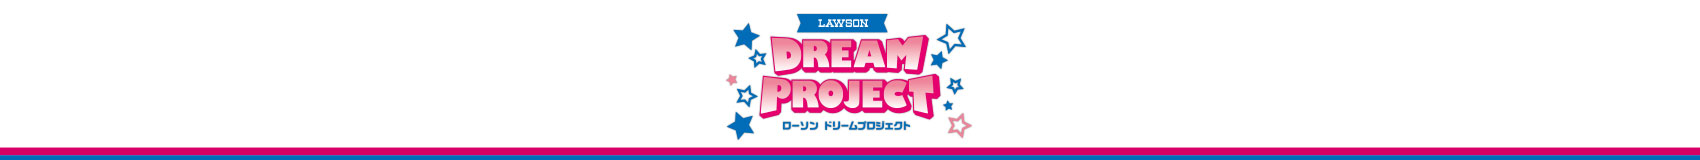 LAWSON DREAM PROJECT